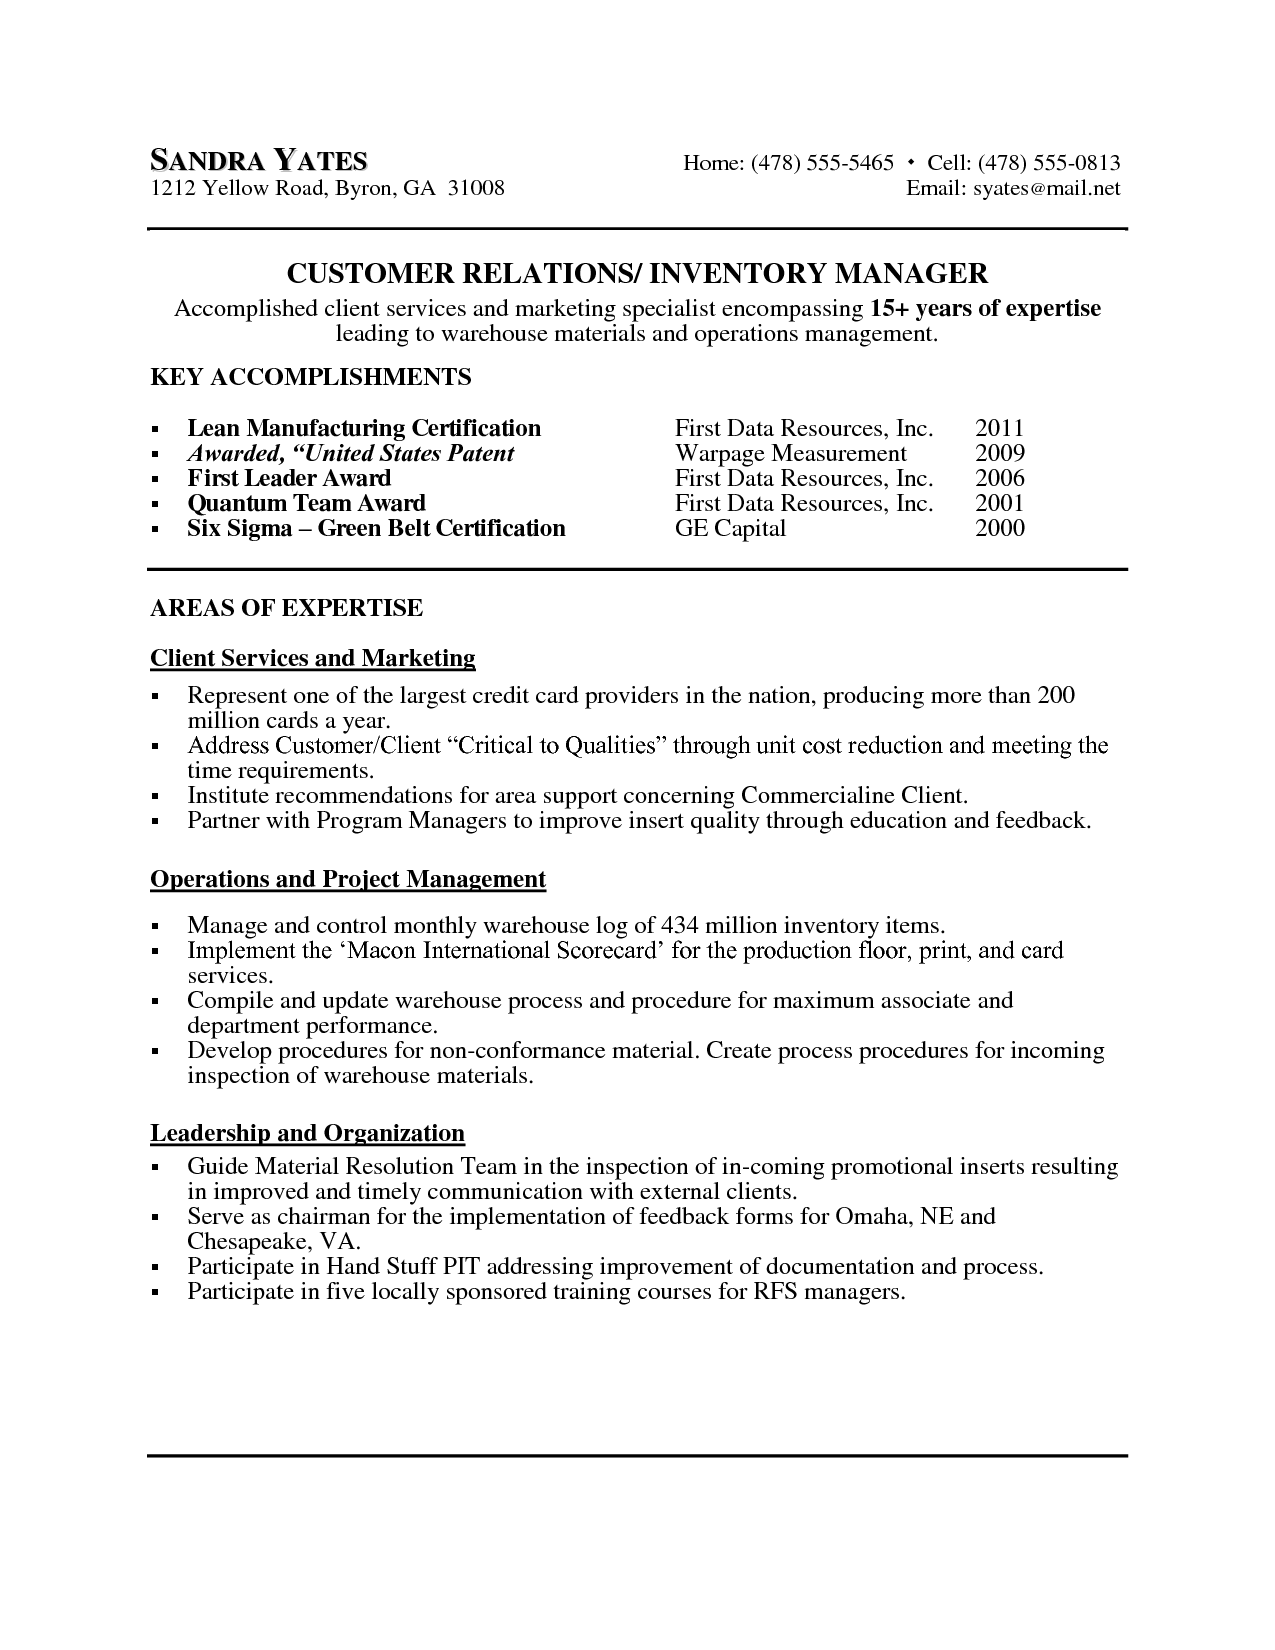 Warehouse Resume Template - http://www.resumecareer.info/warehouse ...